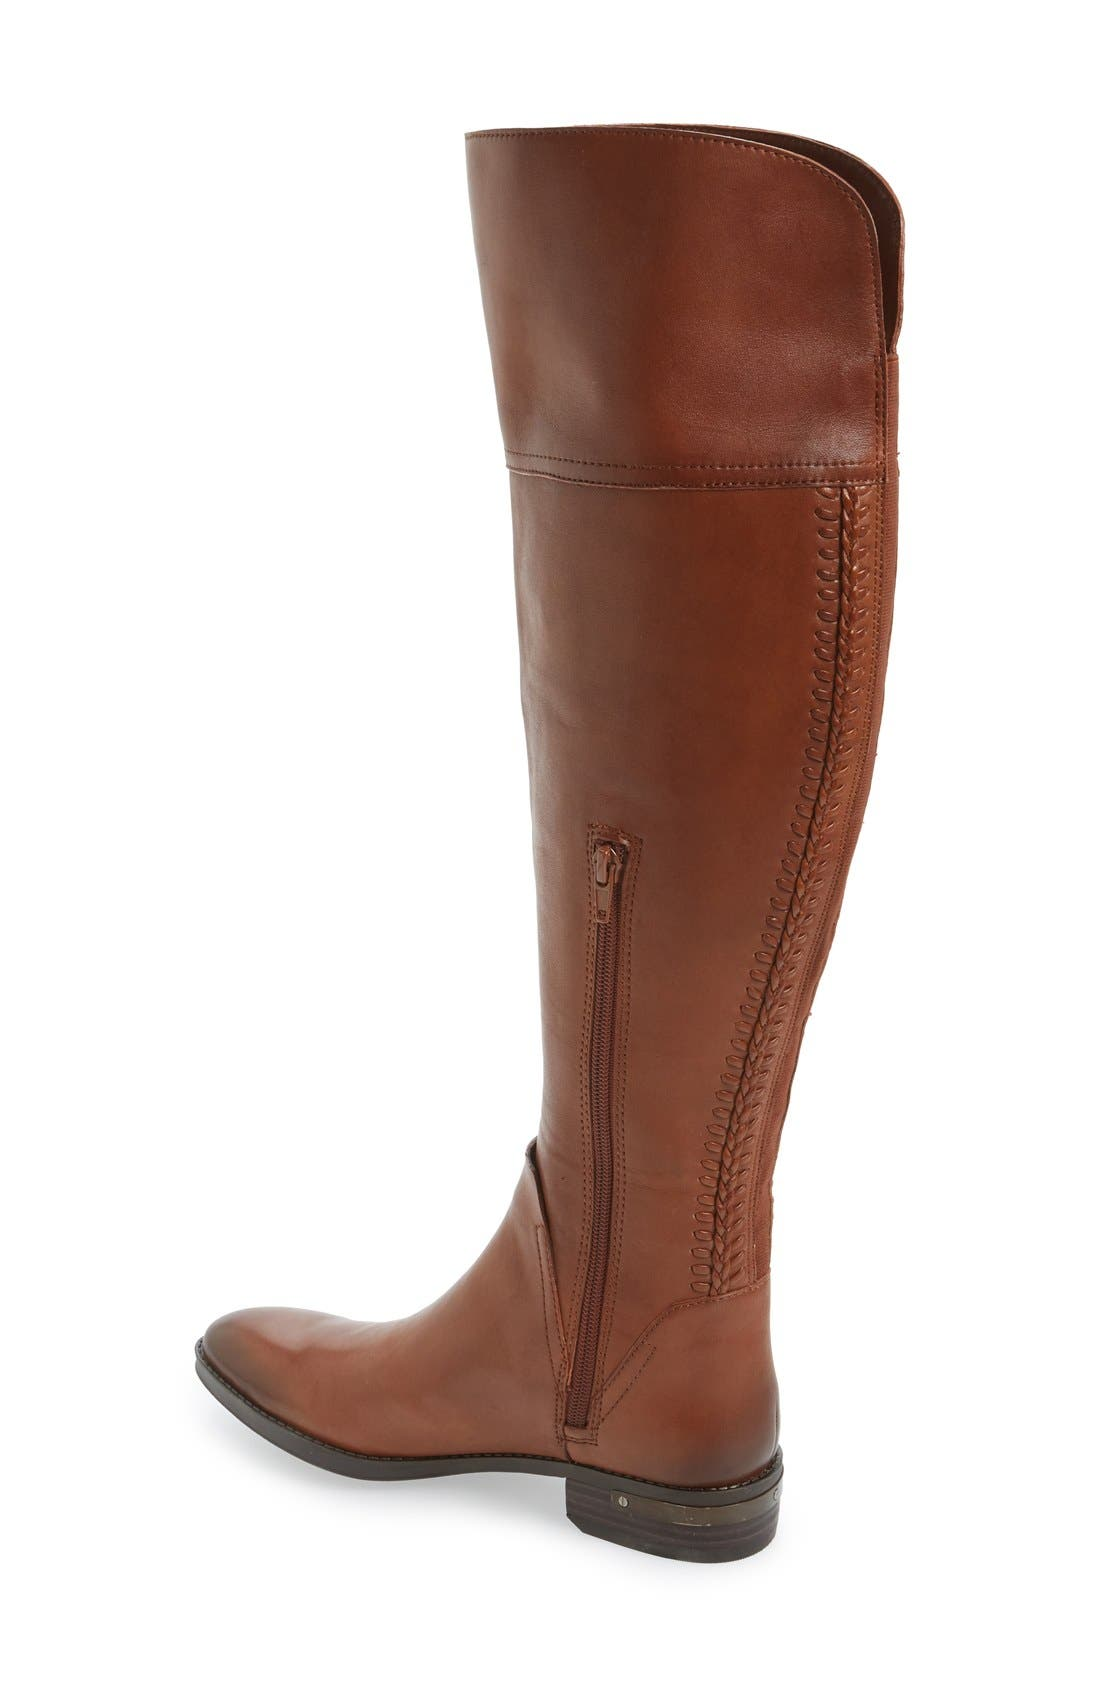 'Pedra' Over the Knee Boot,                             Alternate thumbnail 2, color,                             Gingerbread Leather